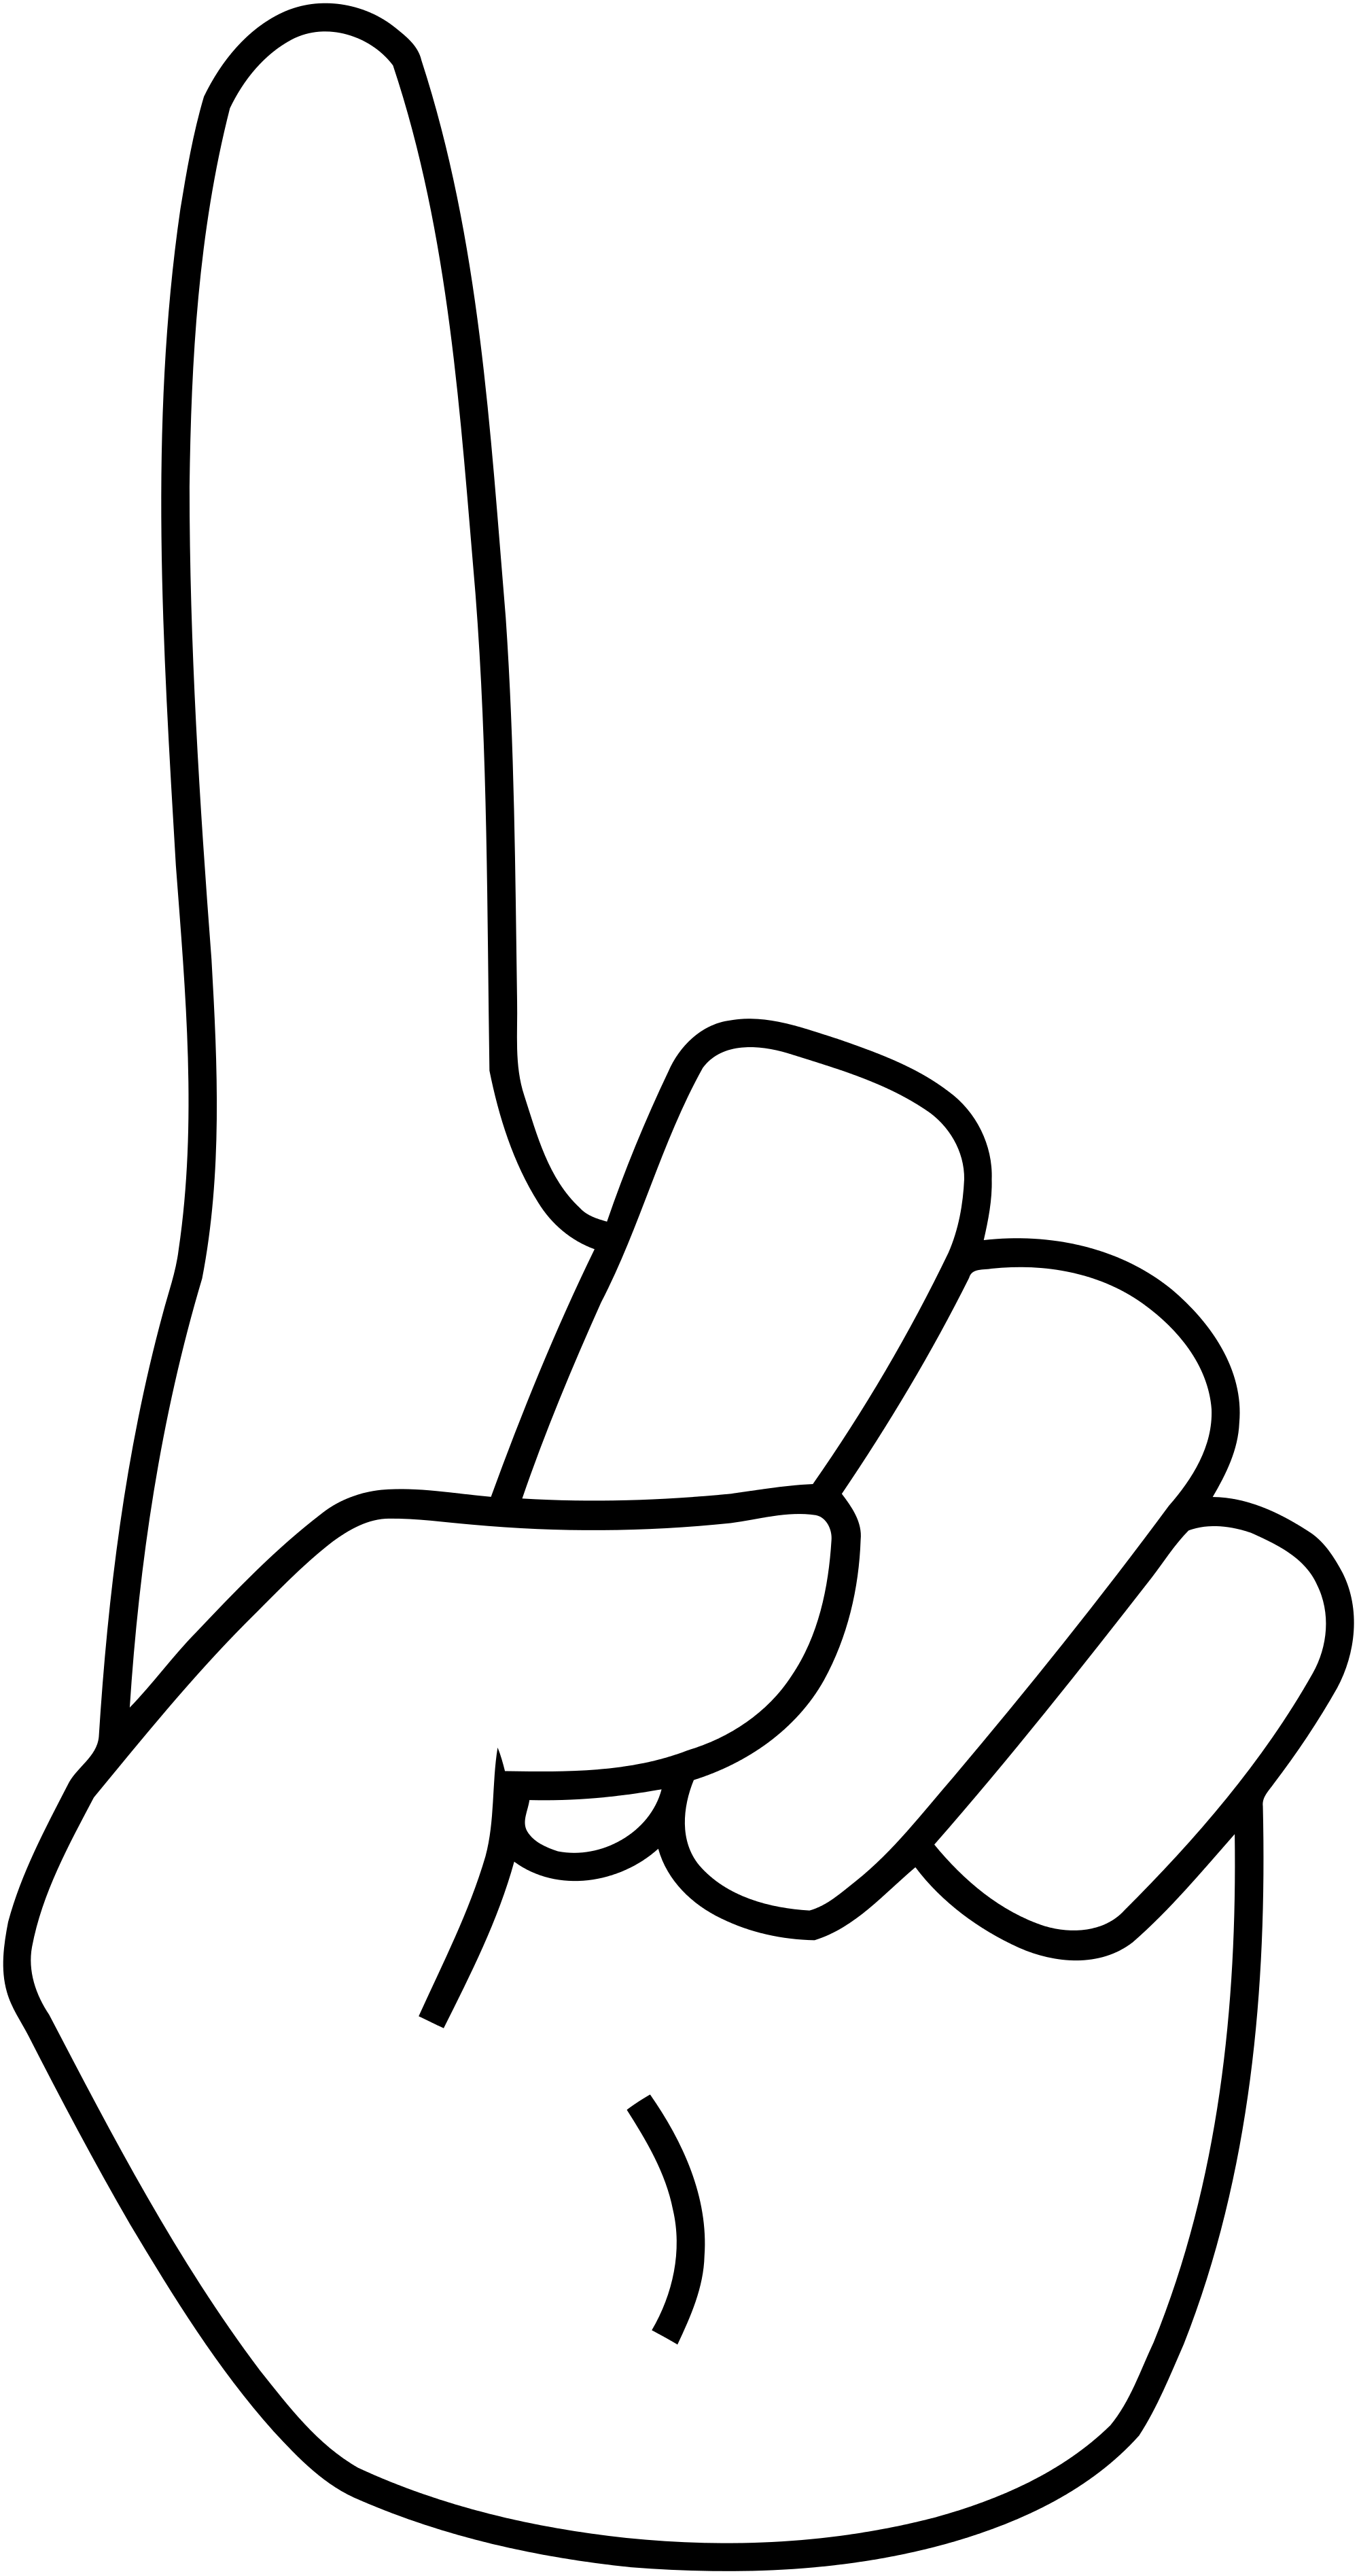 Number 1 clipart one finger. File hand svg wikimedia